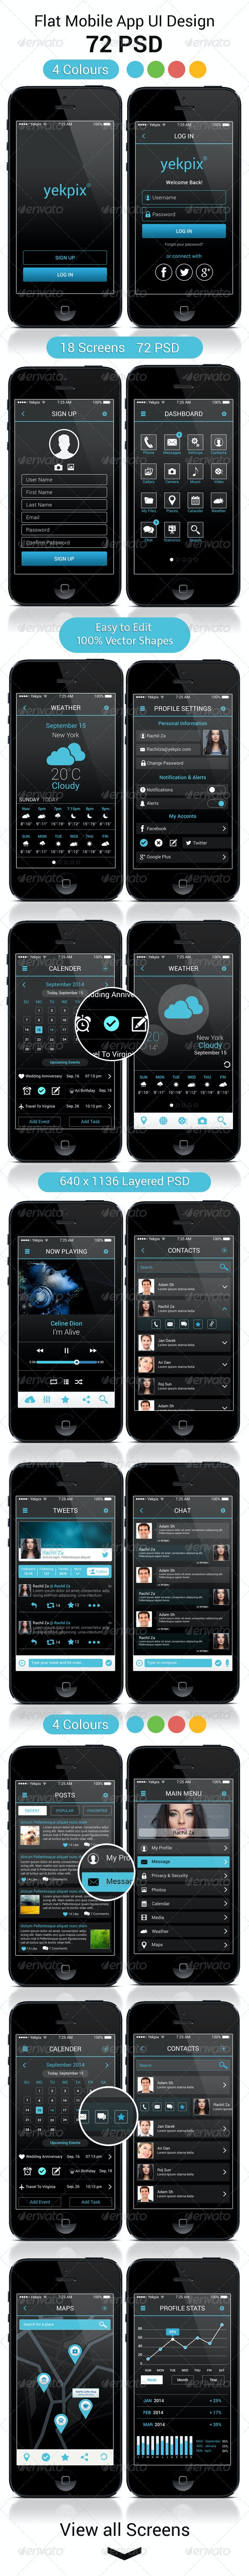 YekPix Flat Mobile App UI User Interfaces PSD - User Interfaces Web Elements